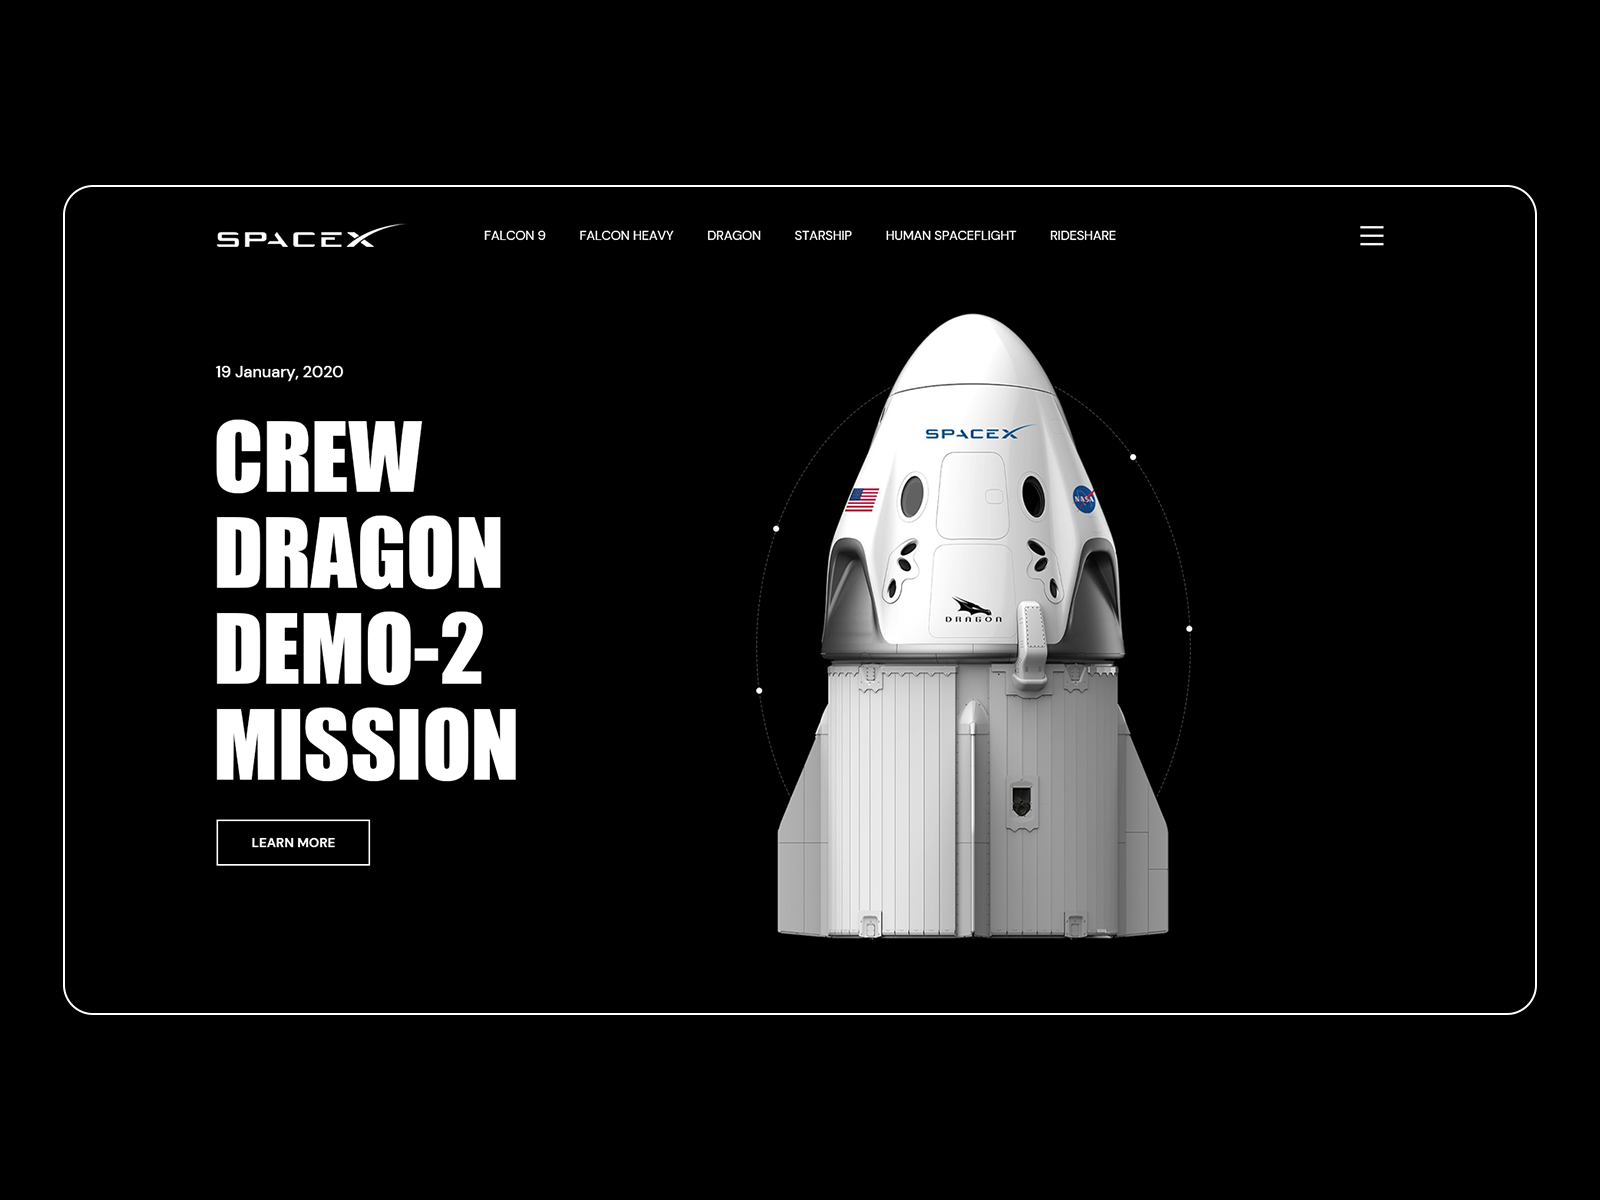 SpaceX - Crew Dragon Demo - 2 Mission in 2020 | Spacex, Mission ...